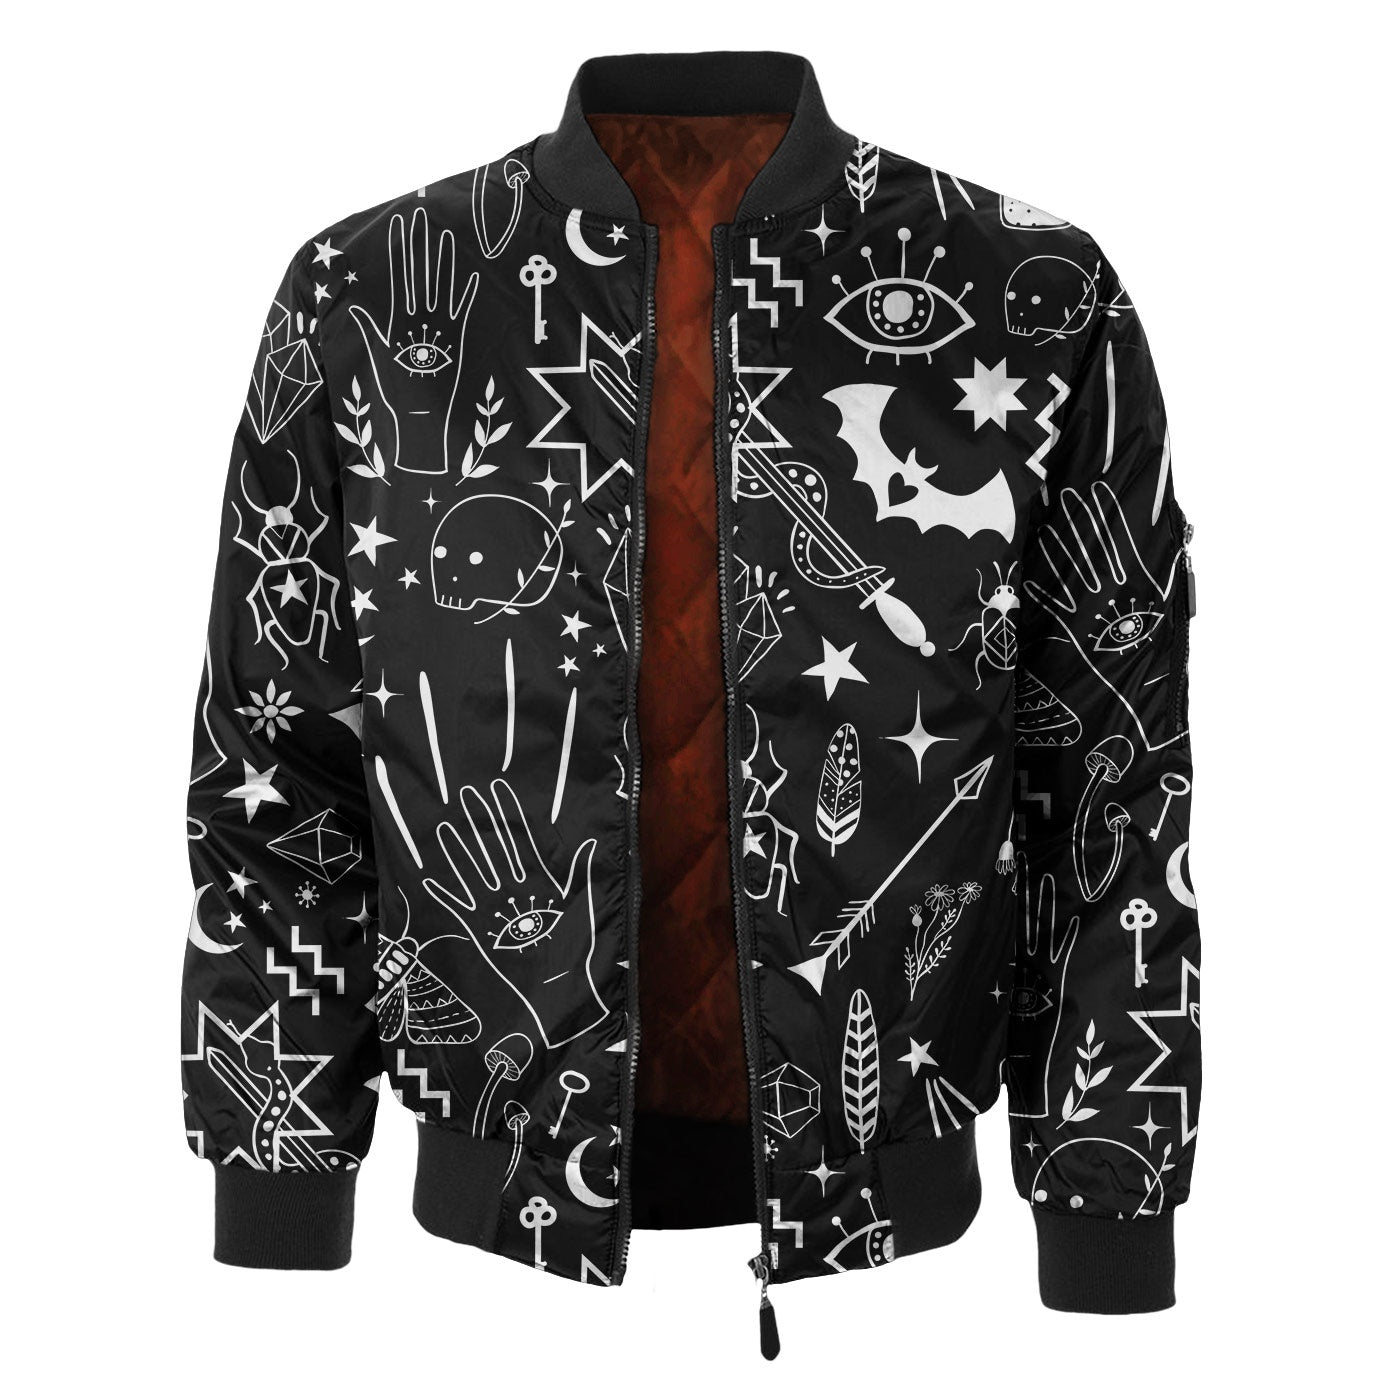 Enchanted Items Bomber Jacket